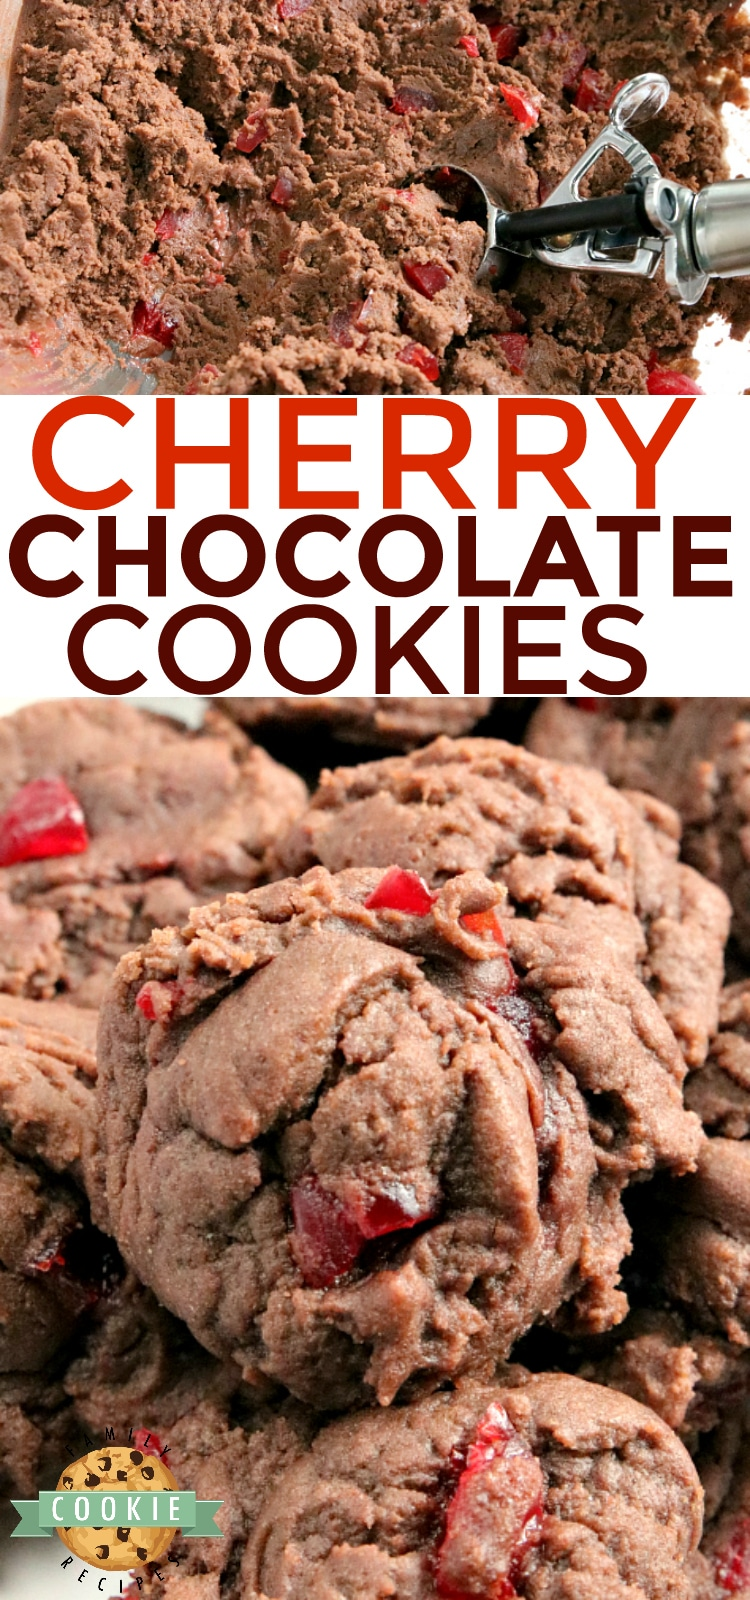 Cherry Chocolate Cookies are soft, chewy and full of cherries! There is chocolate pudding mix in these cookies which gives them the perfect flavor and consistency every time. via @buttergirls